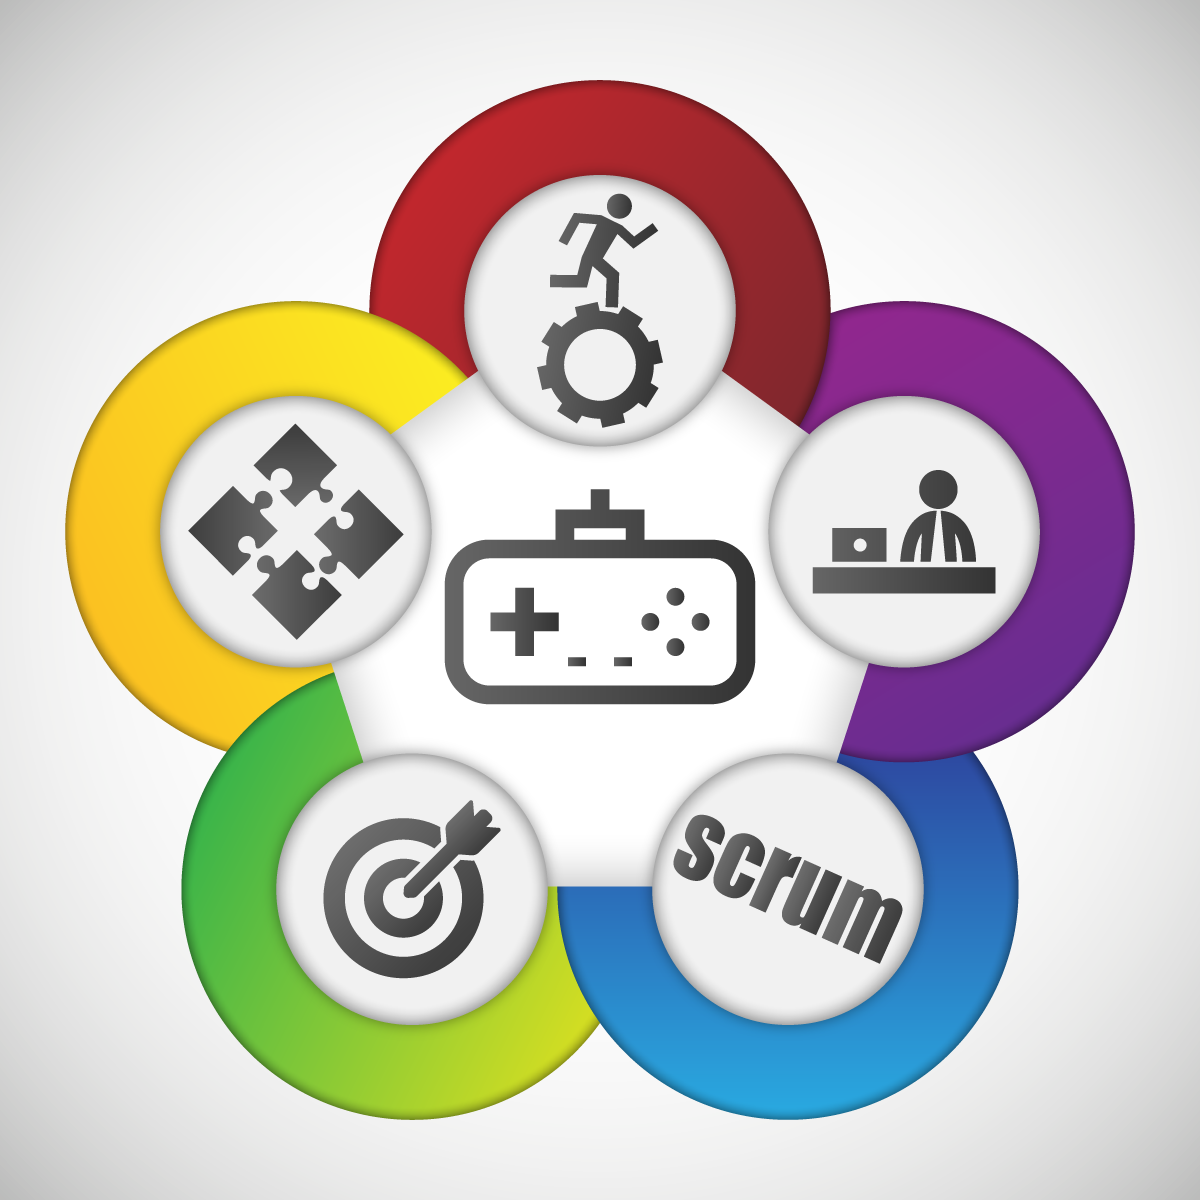 Gestionando con Agilidad - SCRUM MANAGER - En Streaming